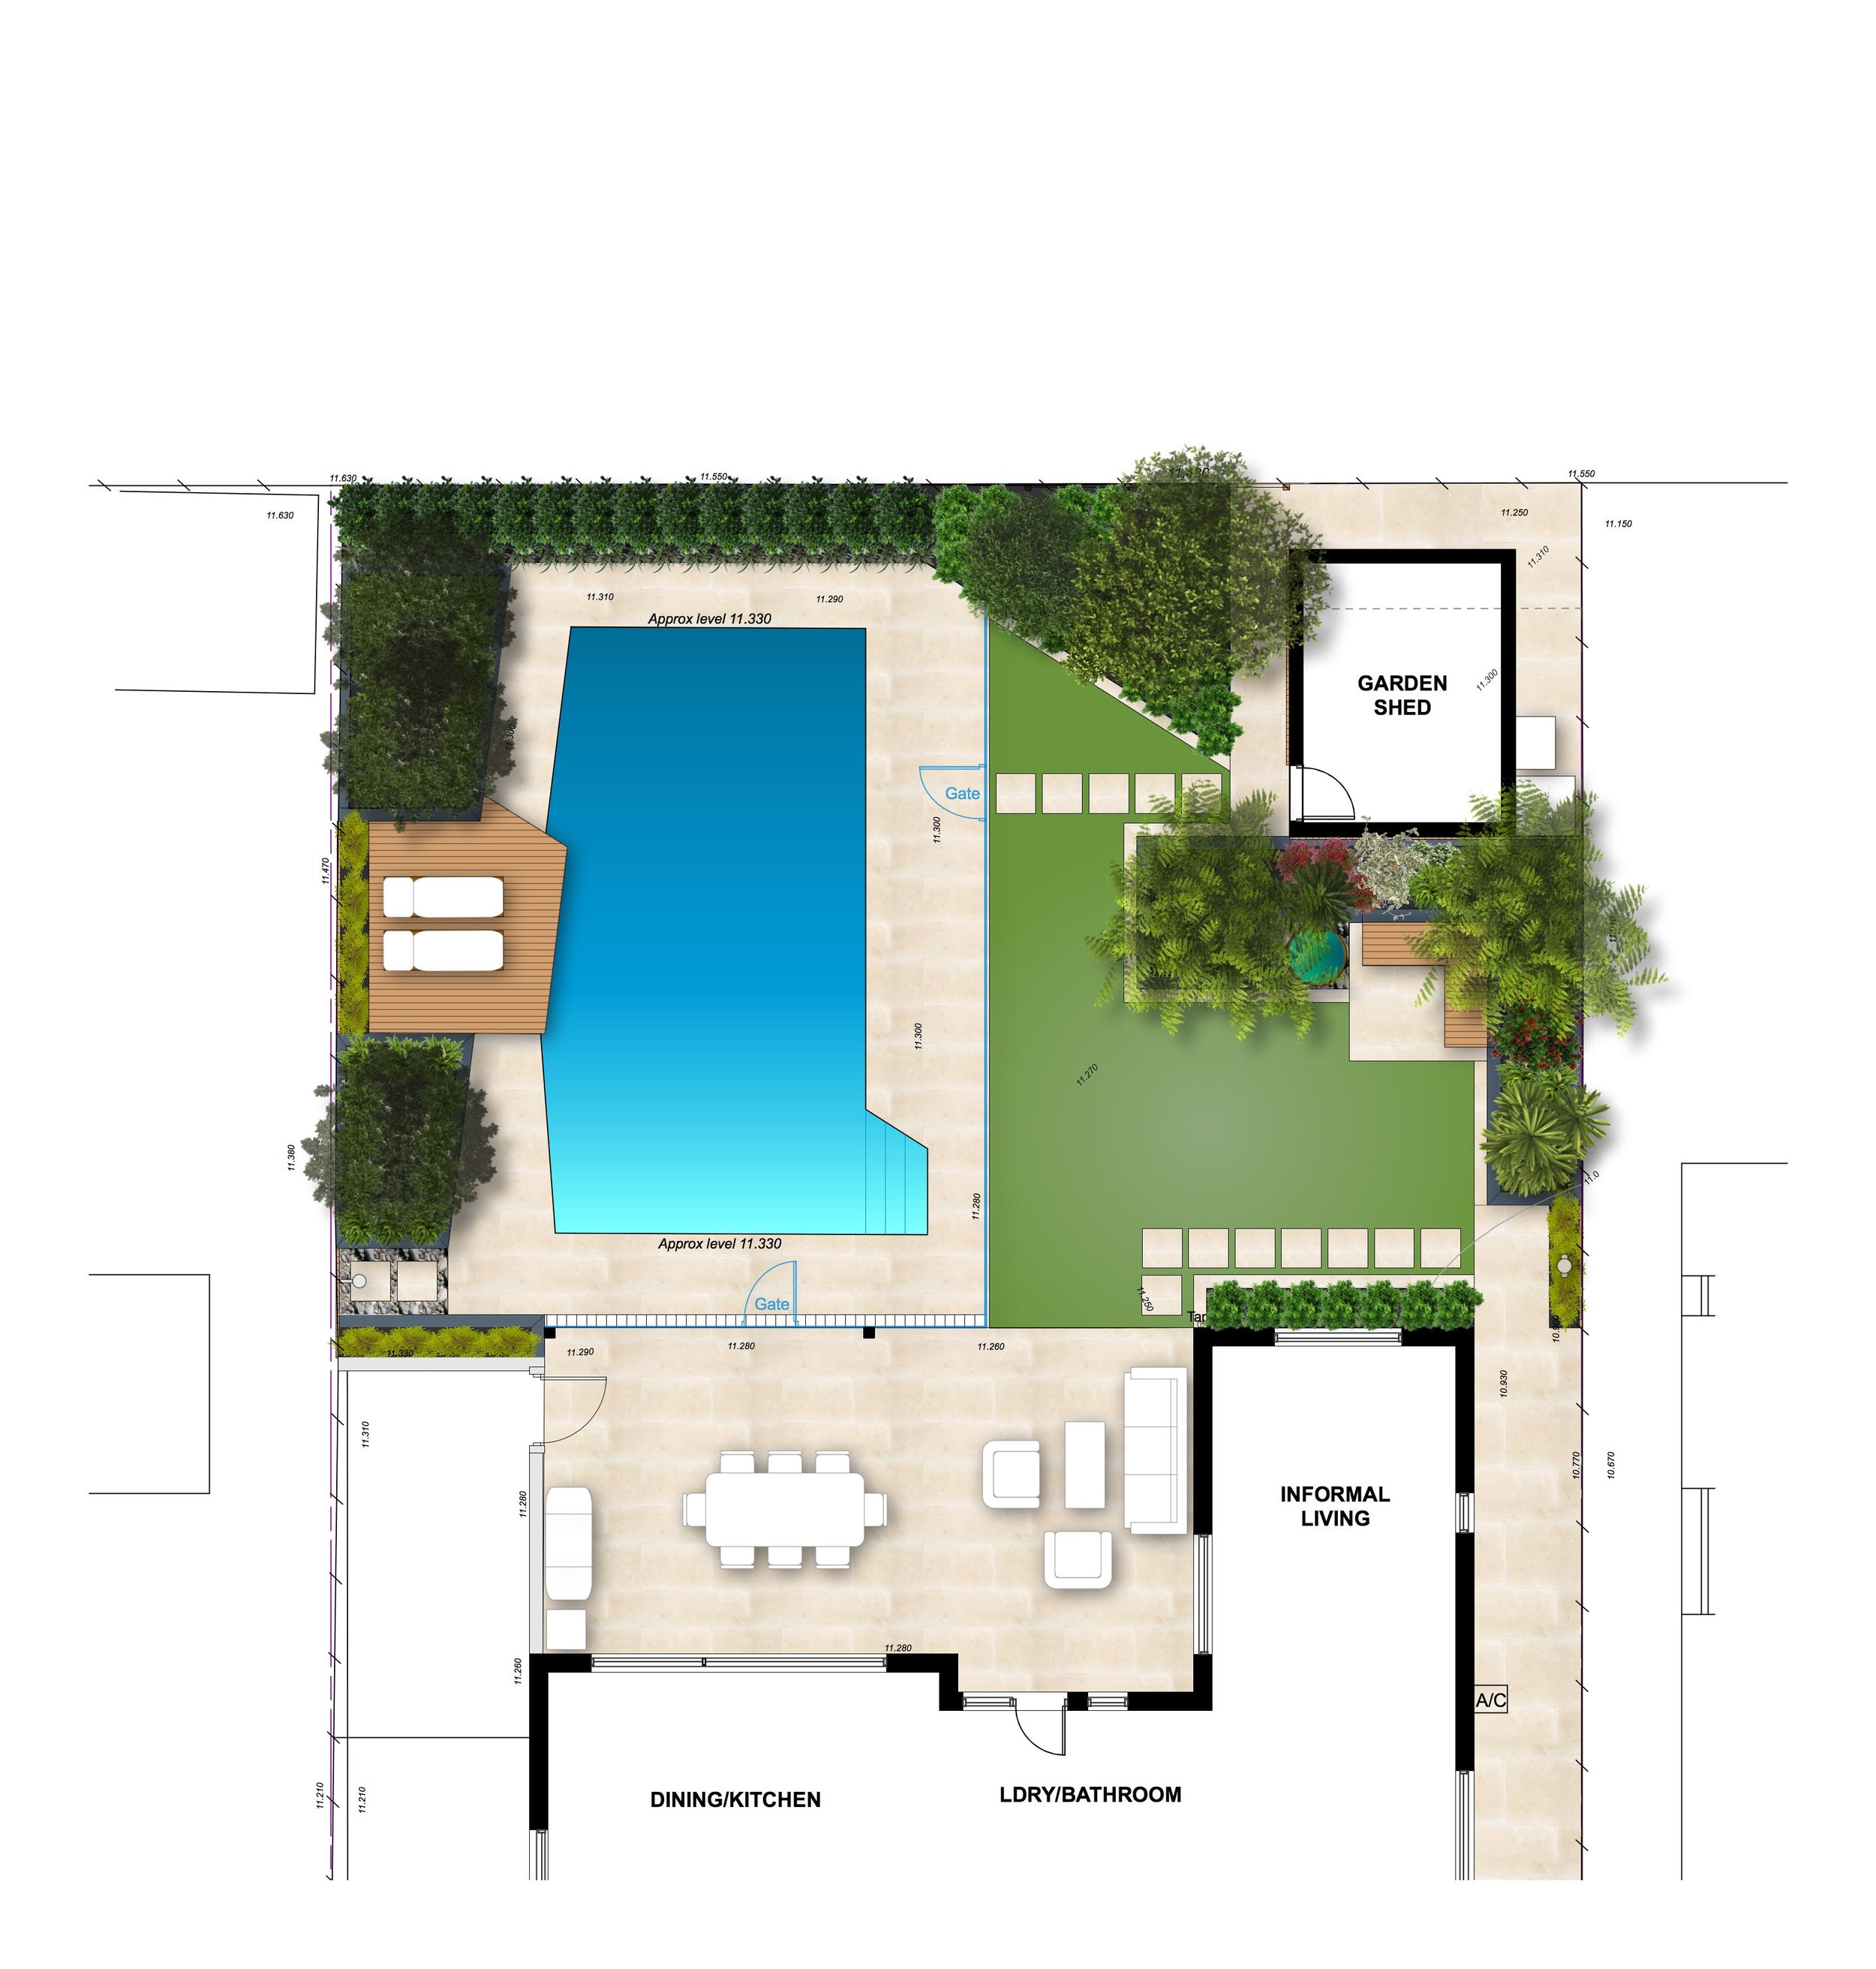 The angles of the existing swimming pool inform the layout of raised planters and the sun lounge deck, with new travertine paving, an outdoor rain shower and an intimate reading nook.